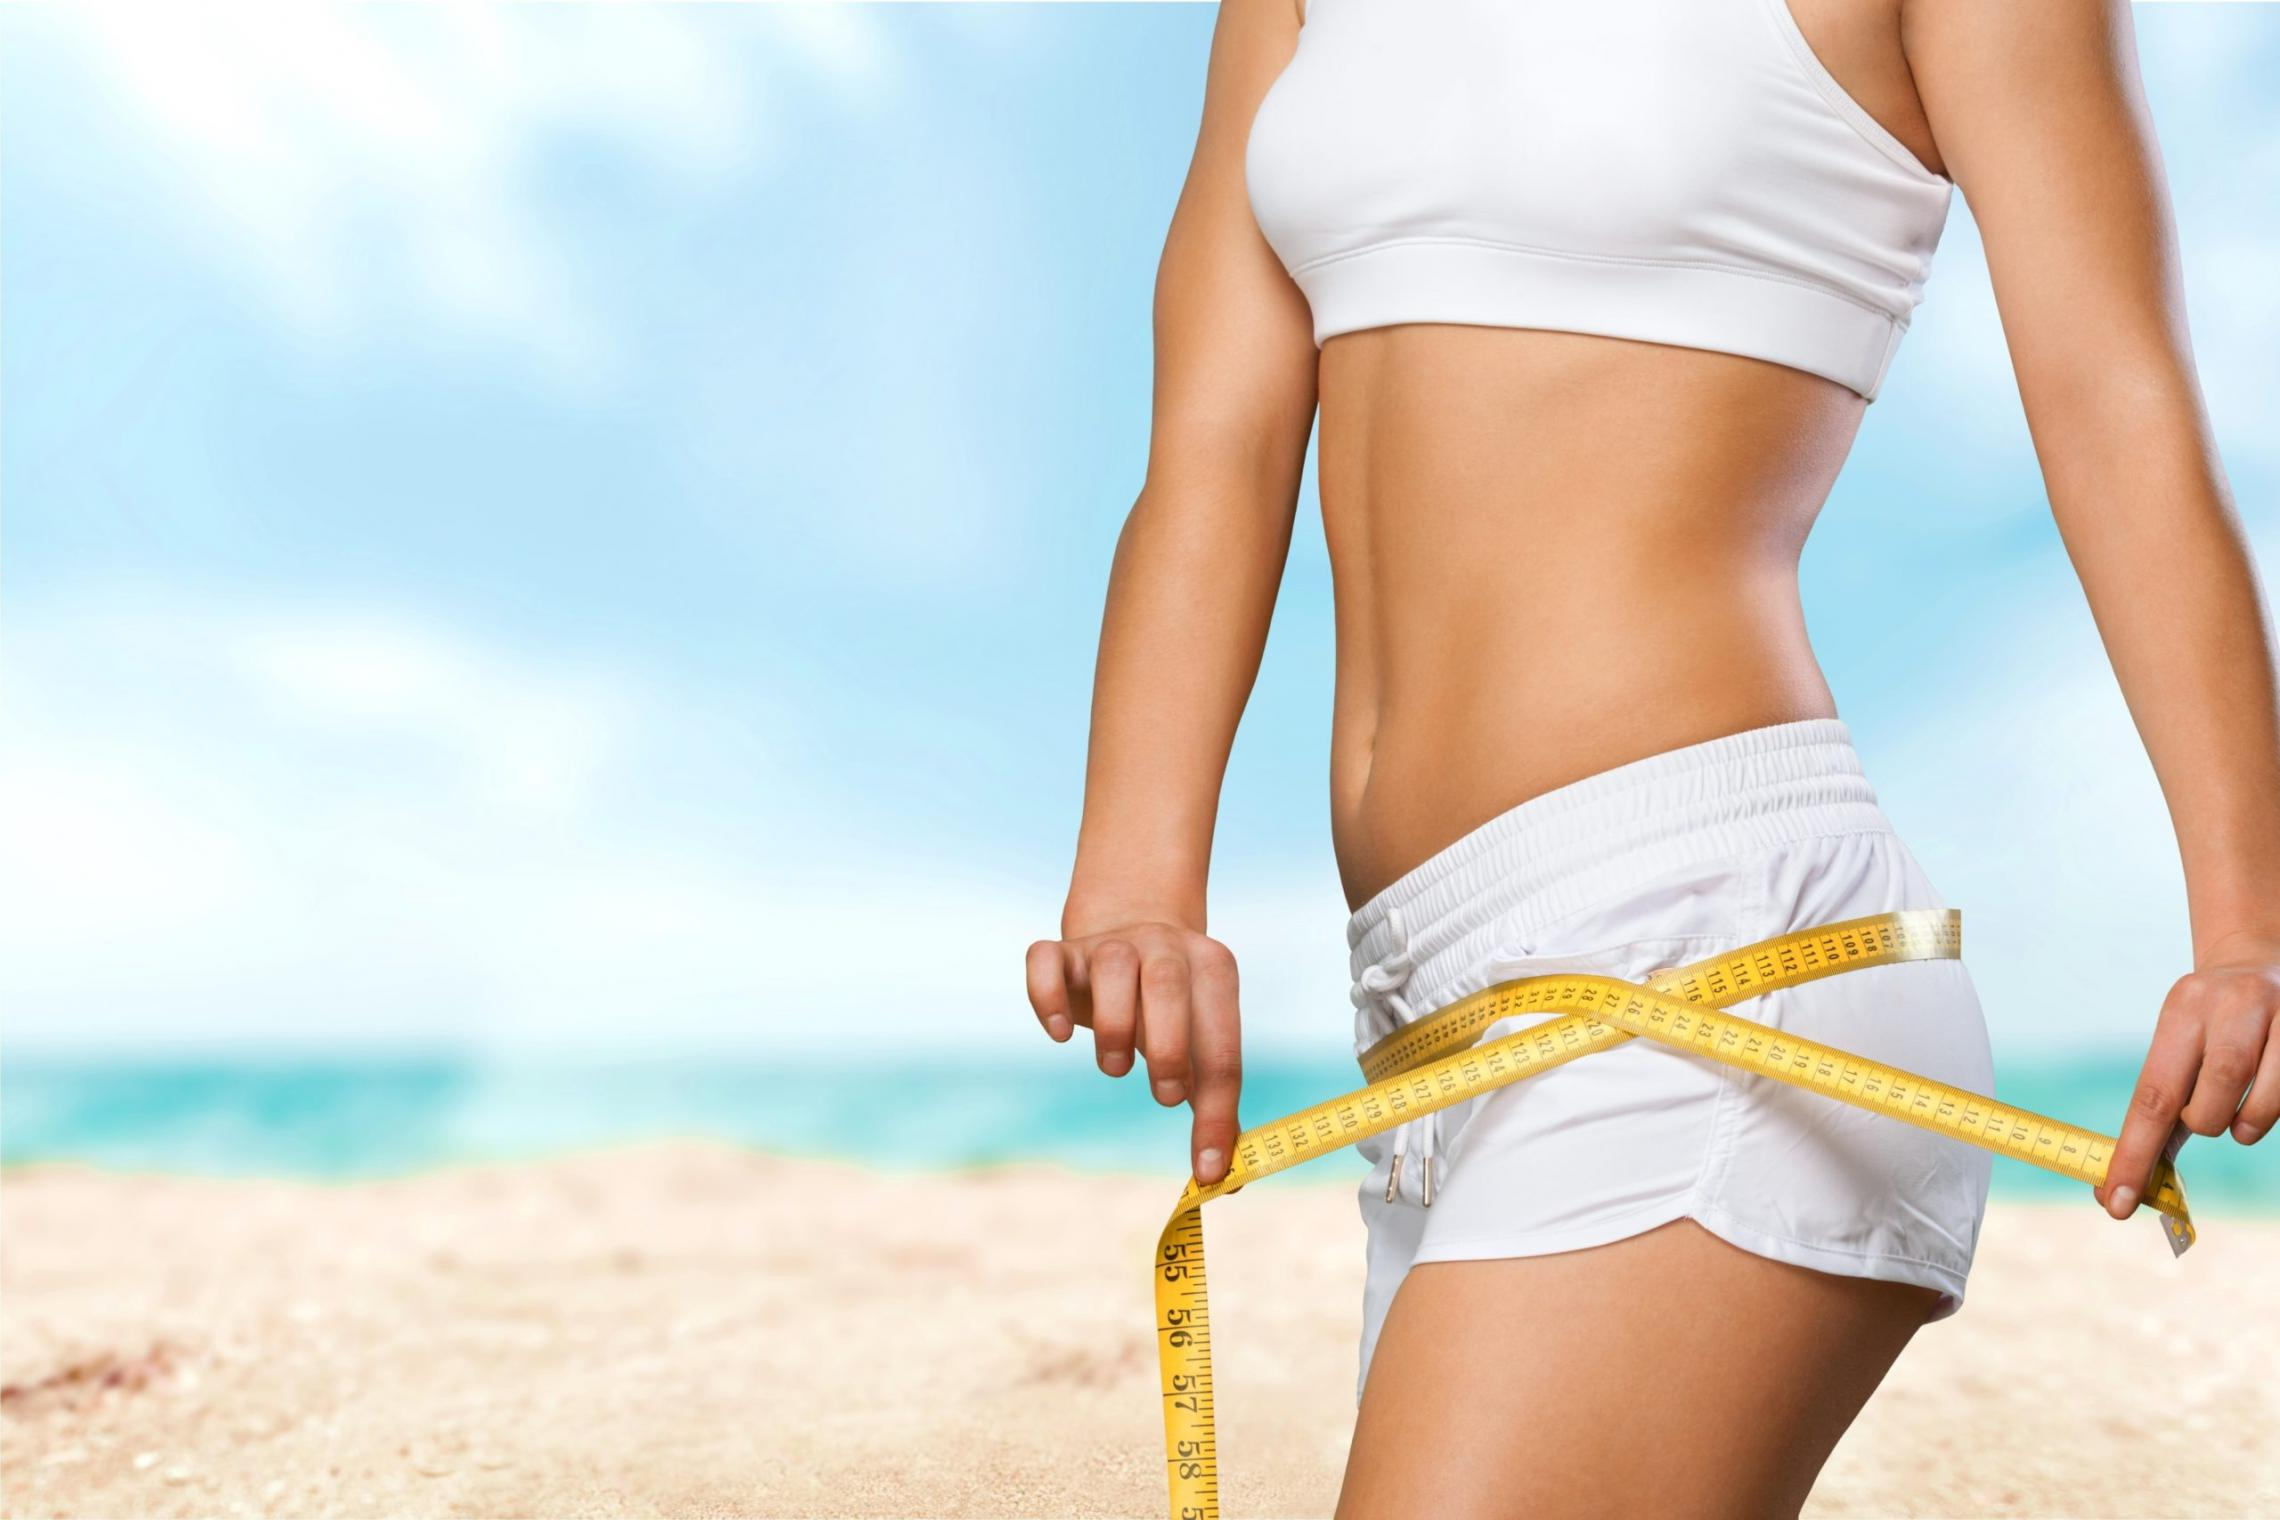 8-fad-weight-loss-diet-scaled.jpg (2560×1707)